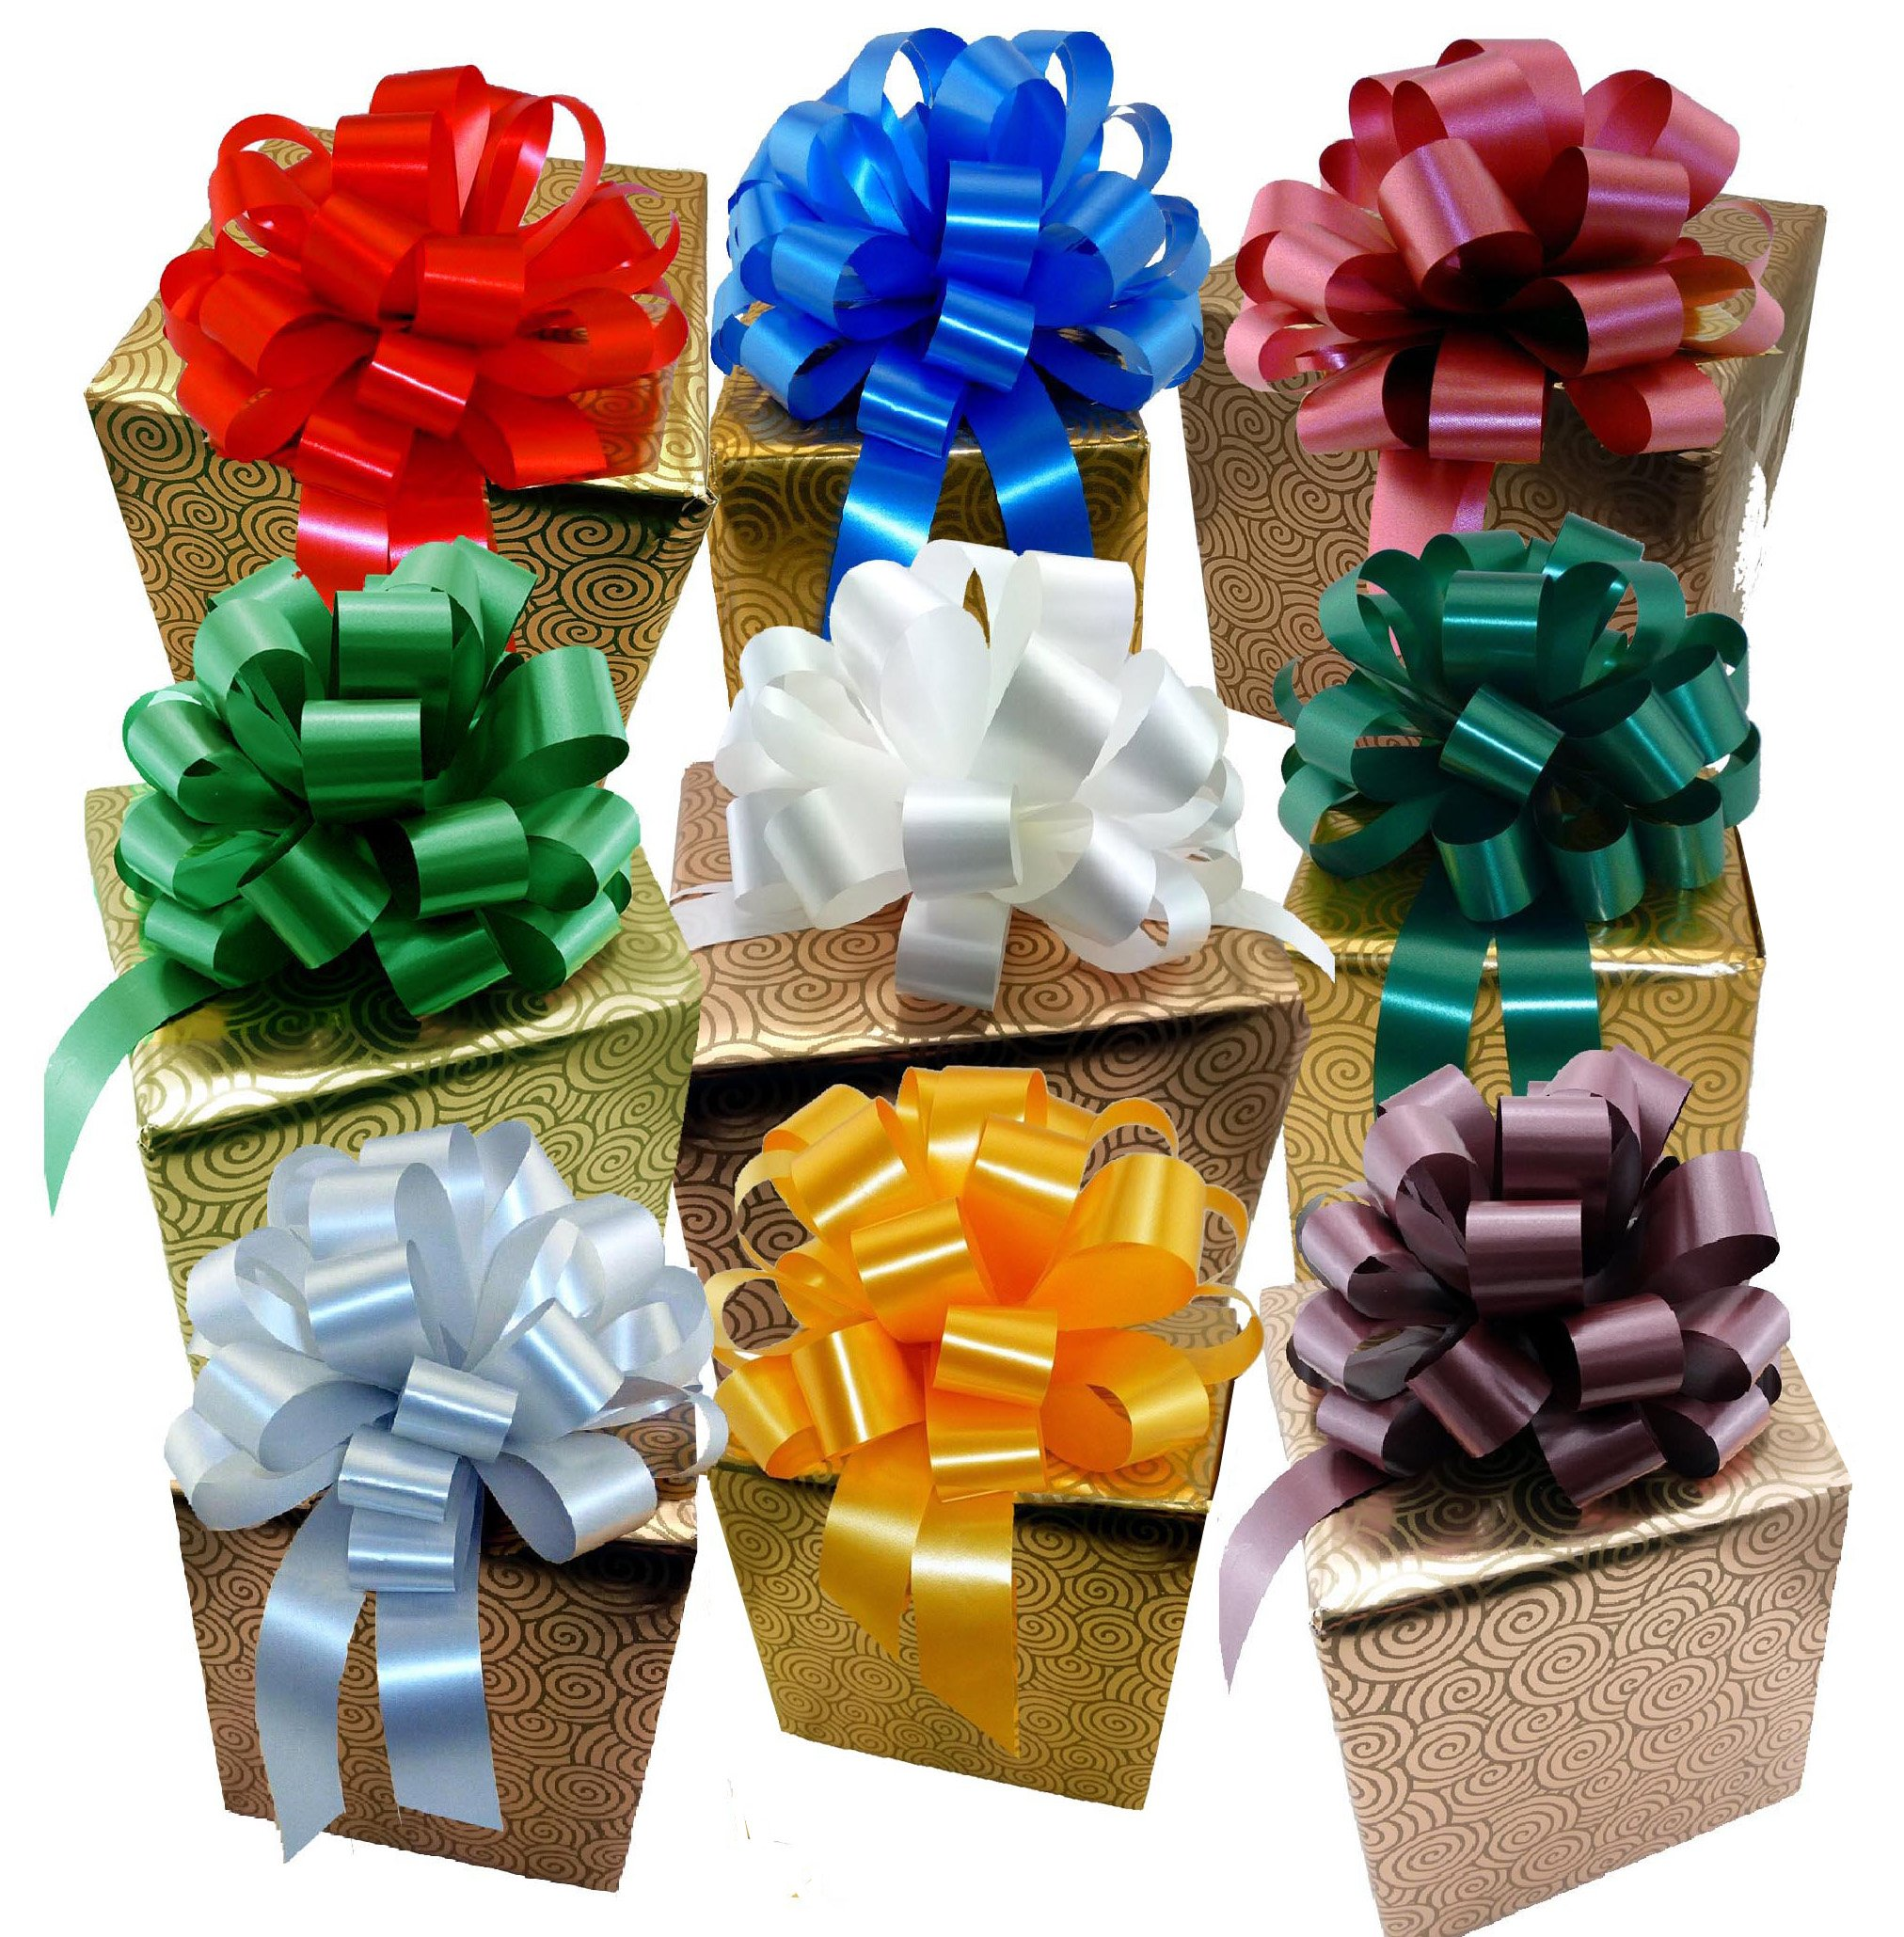 """Big Decorative Gift Pull Bows, Assorted Solid Colors - 8"""" Wide, Set of 9, Red, Green, Blue, White, Gold, Silver"""